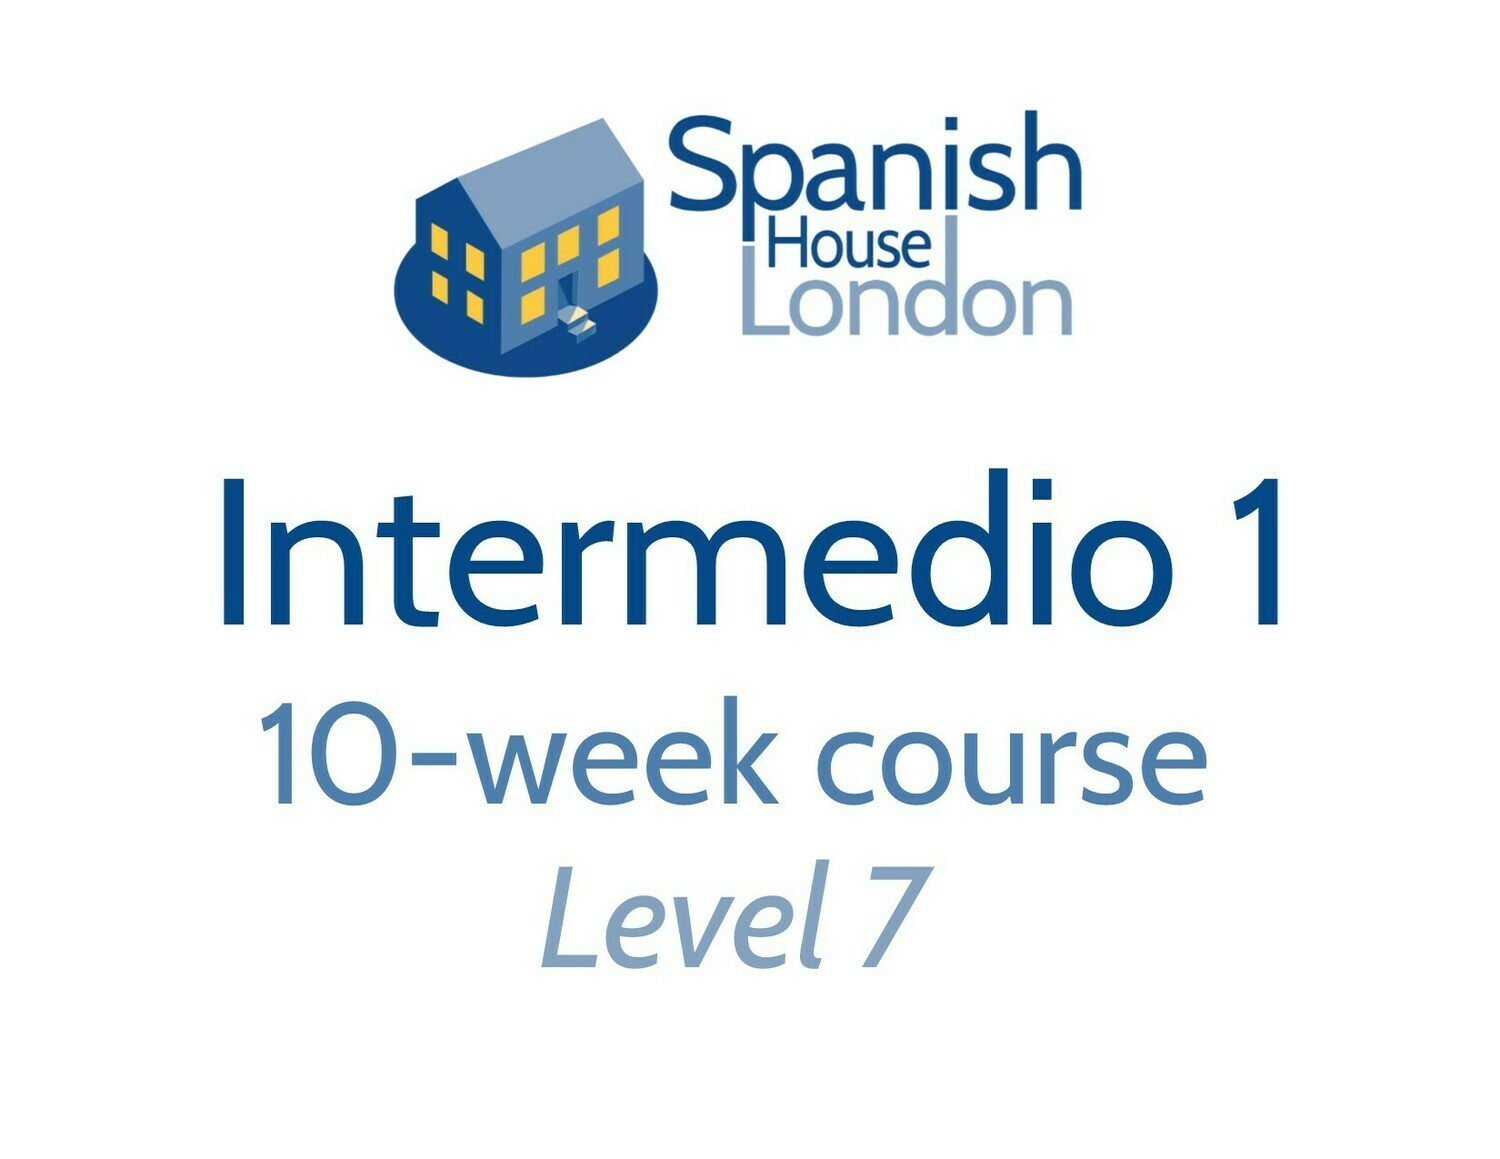 Intermedio 1 Course starting on 8th January at 6pm in Euston